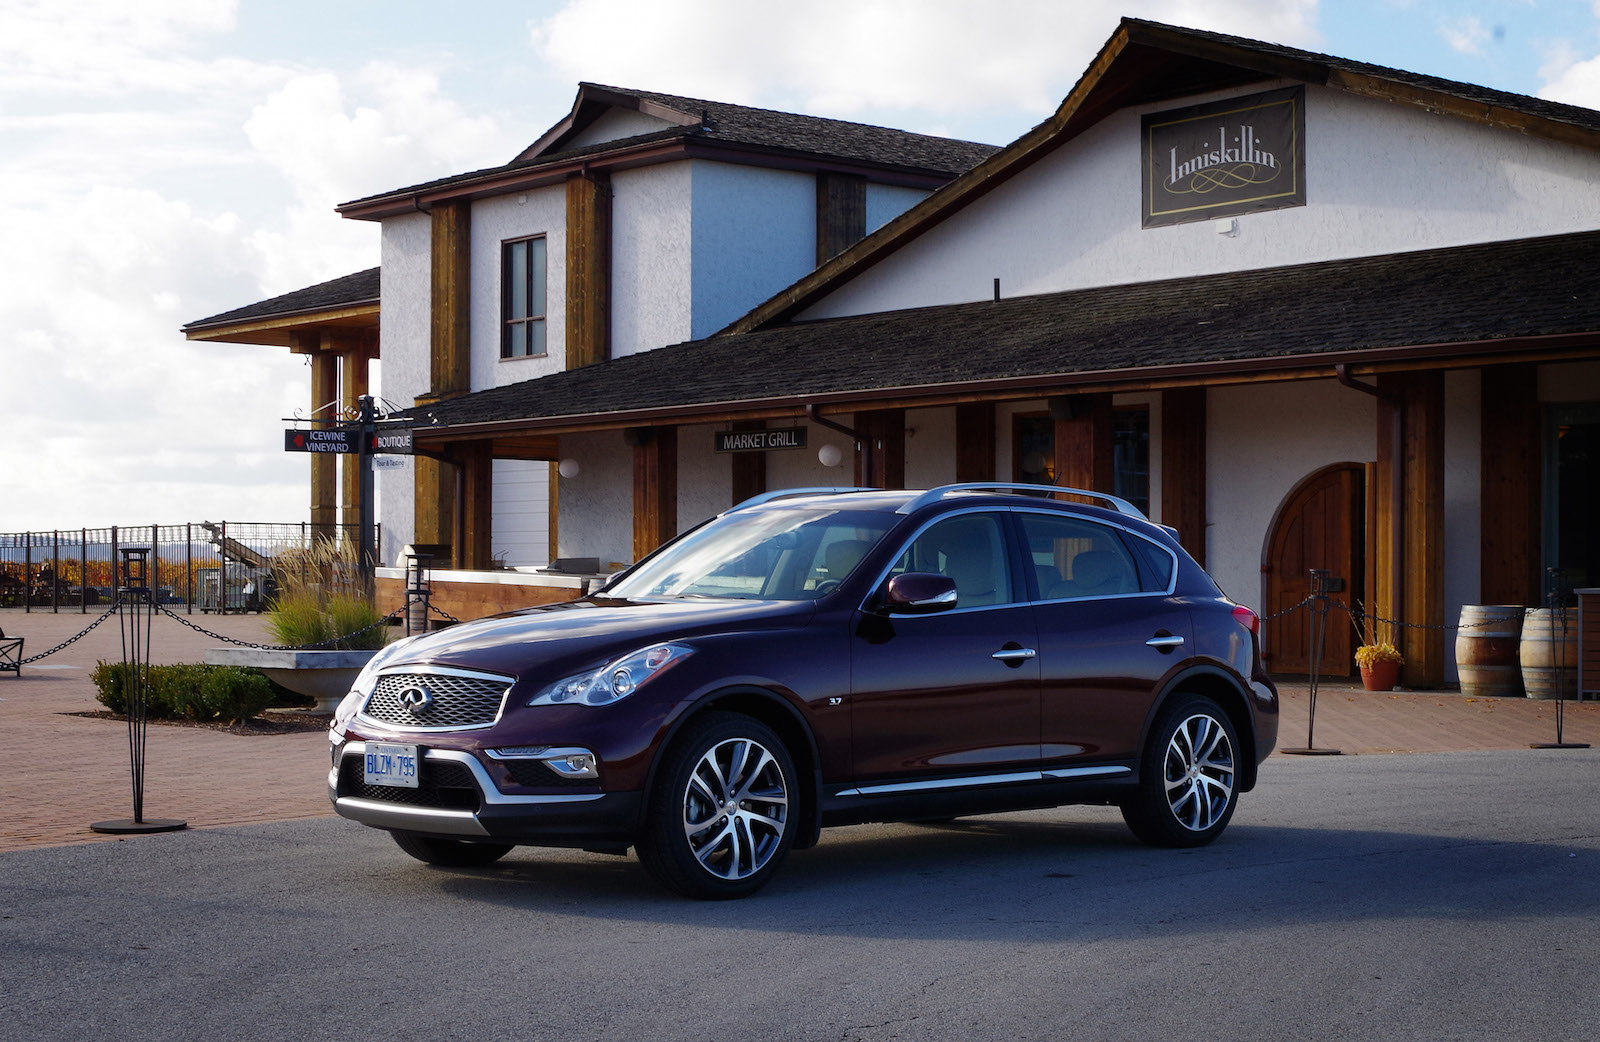 infiniti review take carsdirect reviews infinity our